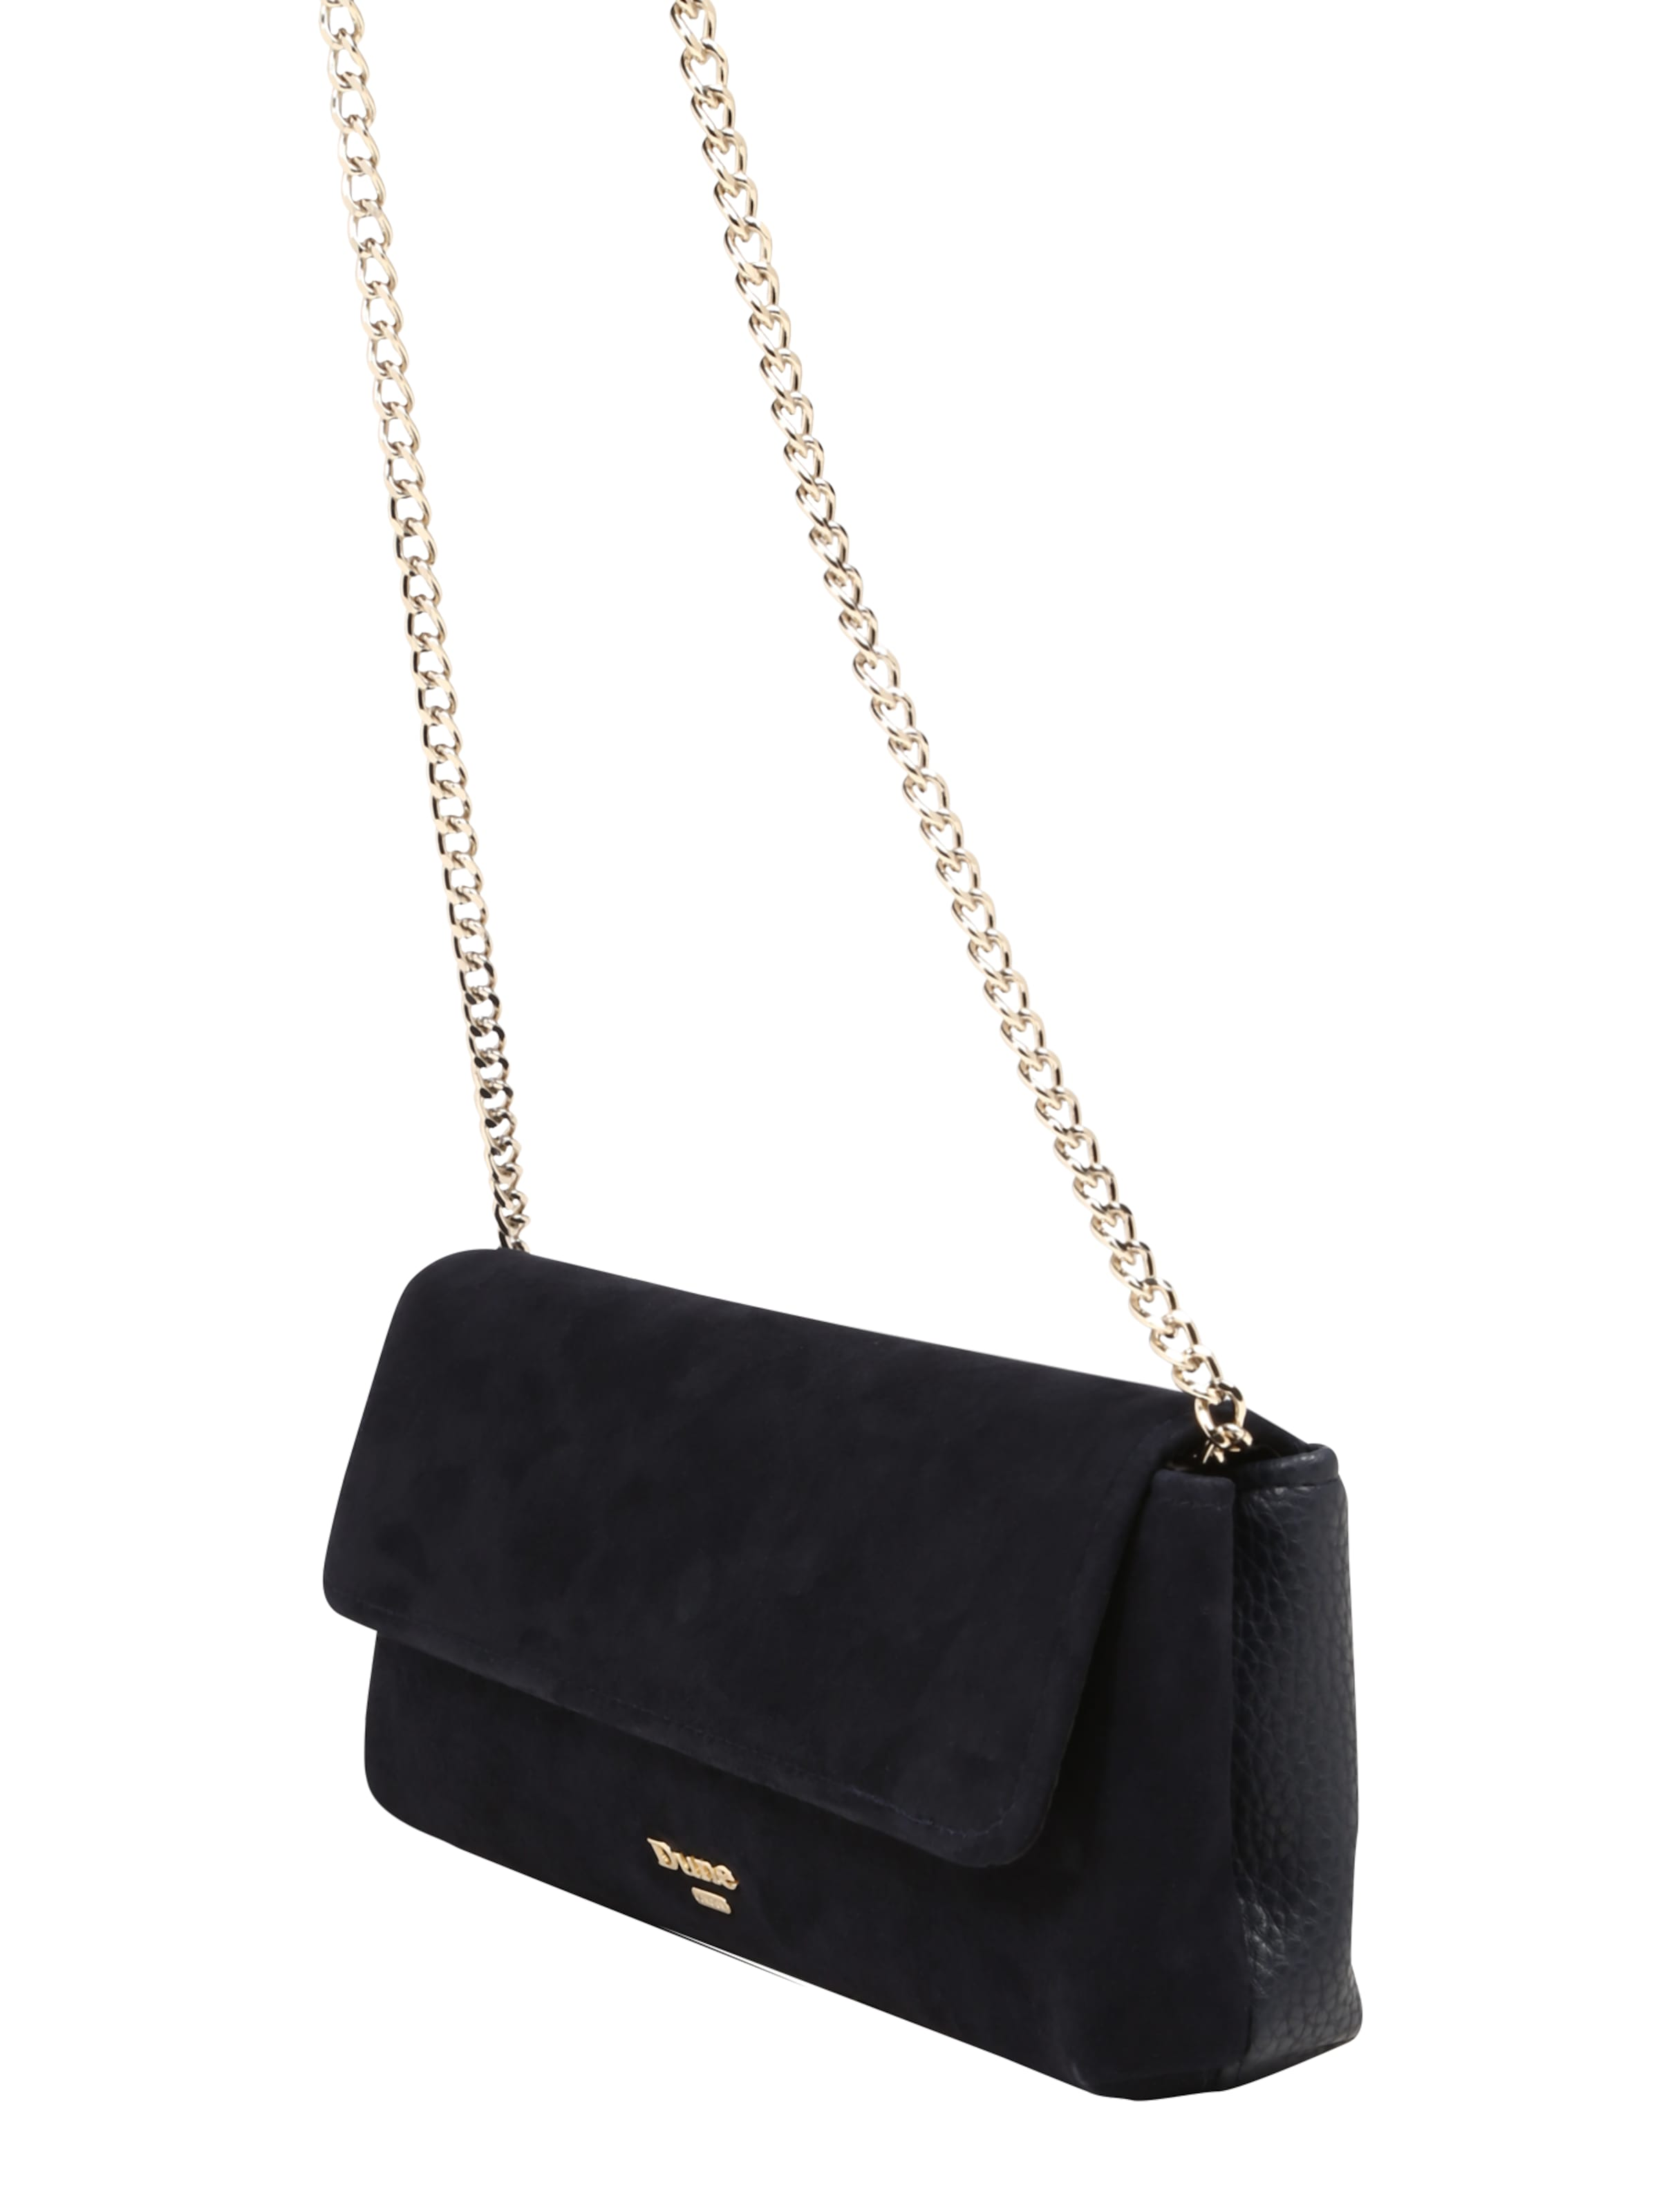 Tasche 'belong Dune Navy ' London In xshdtQrC